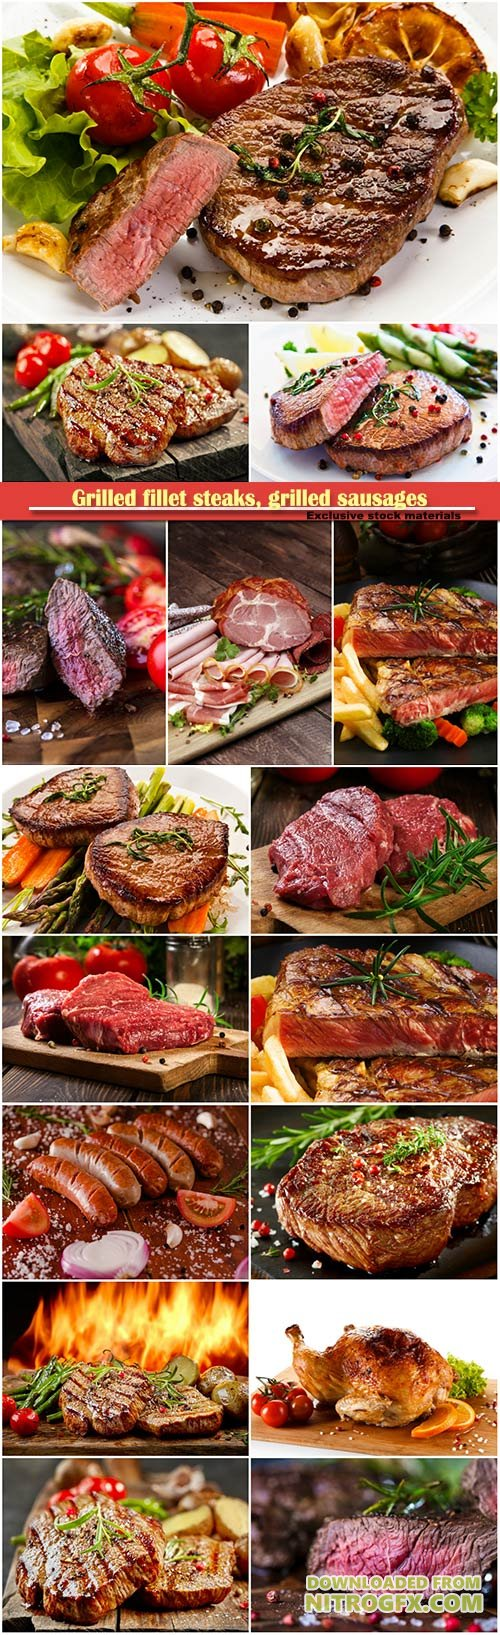 Grilled fillet steaks, grilled sausages and vegetables, tomato and onion